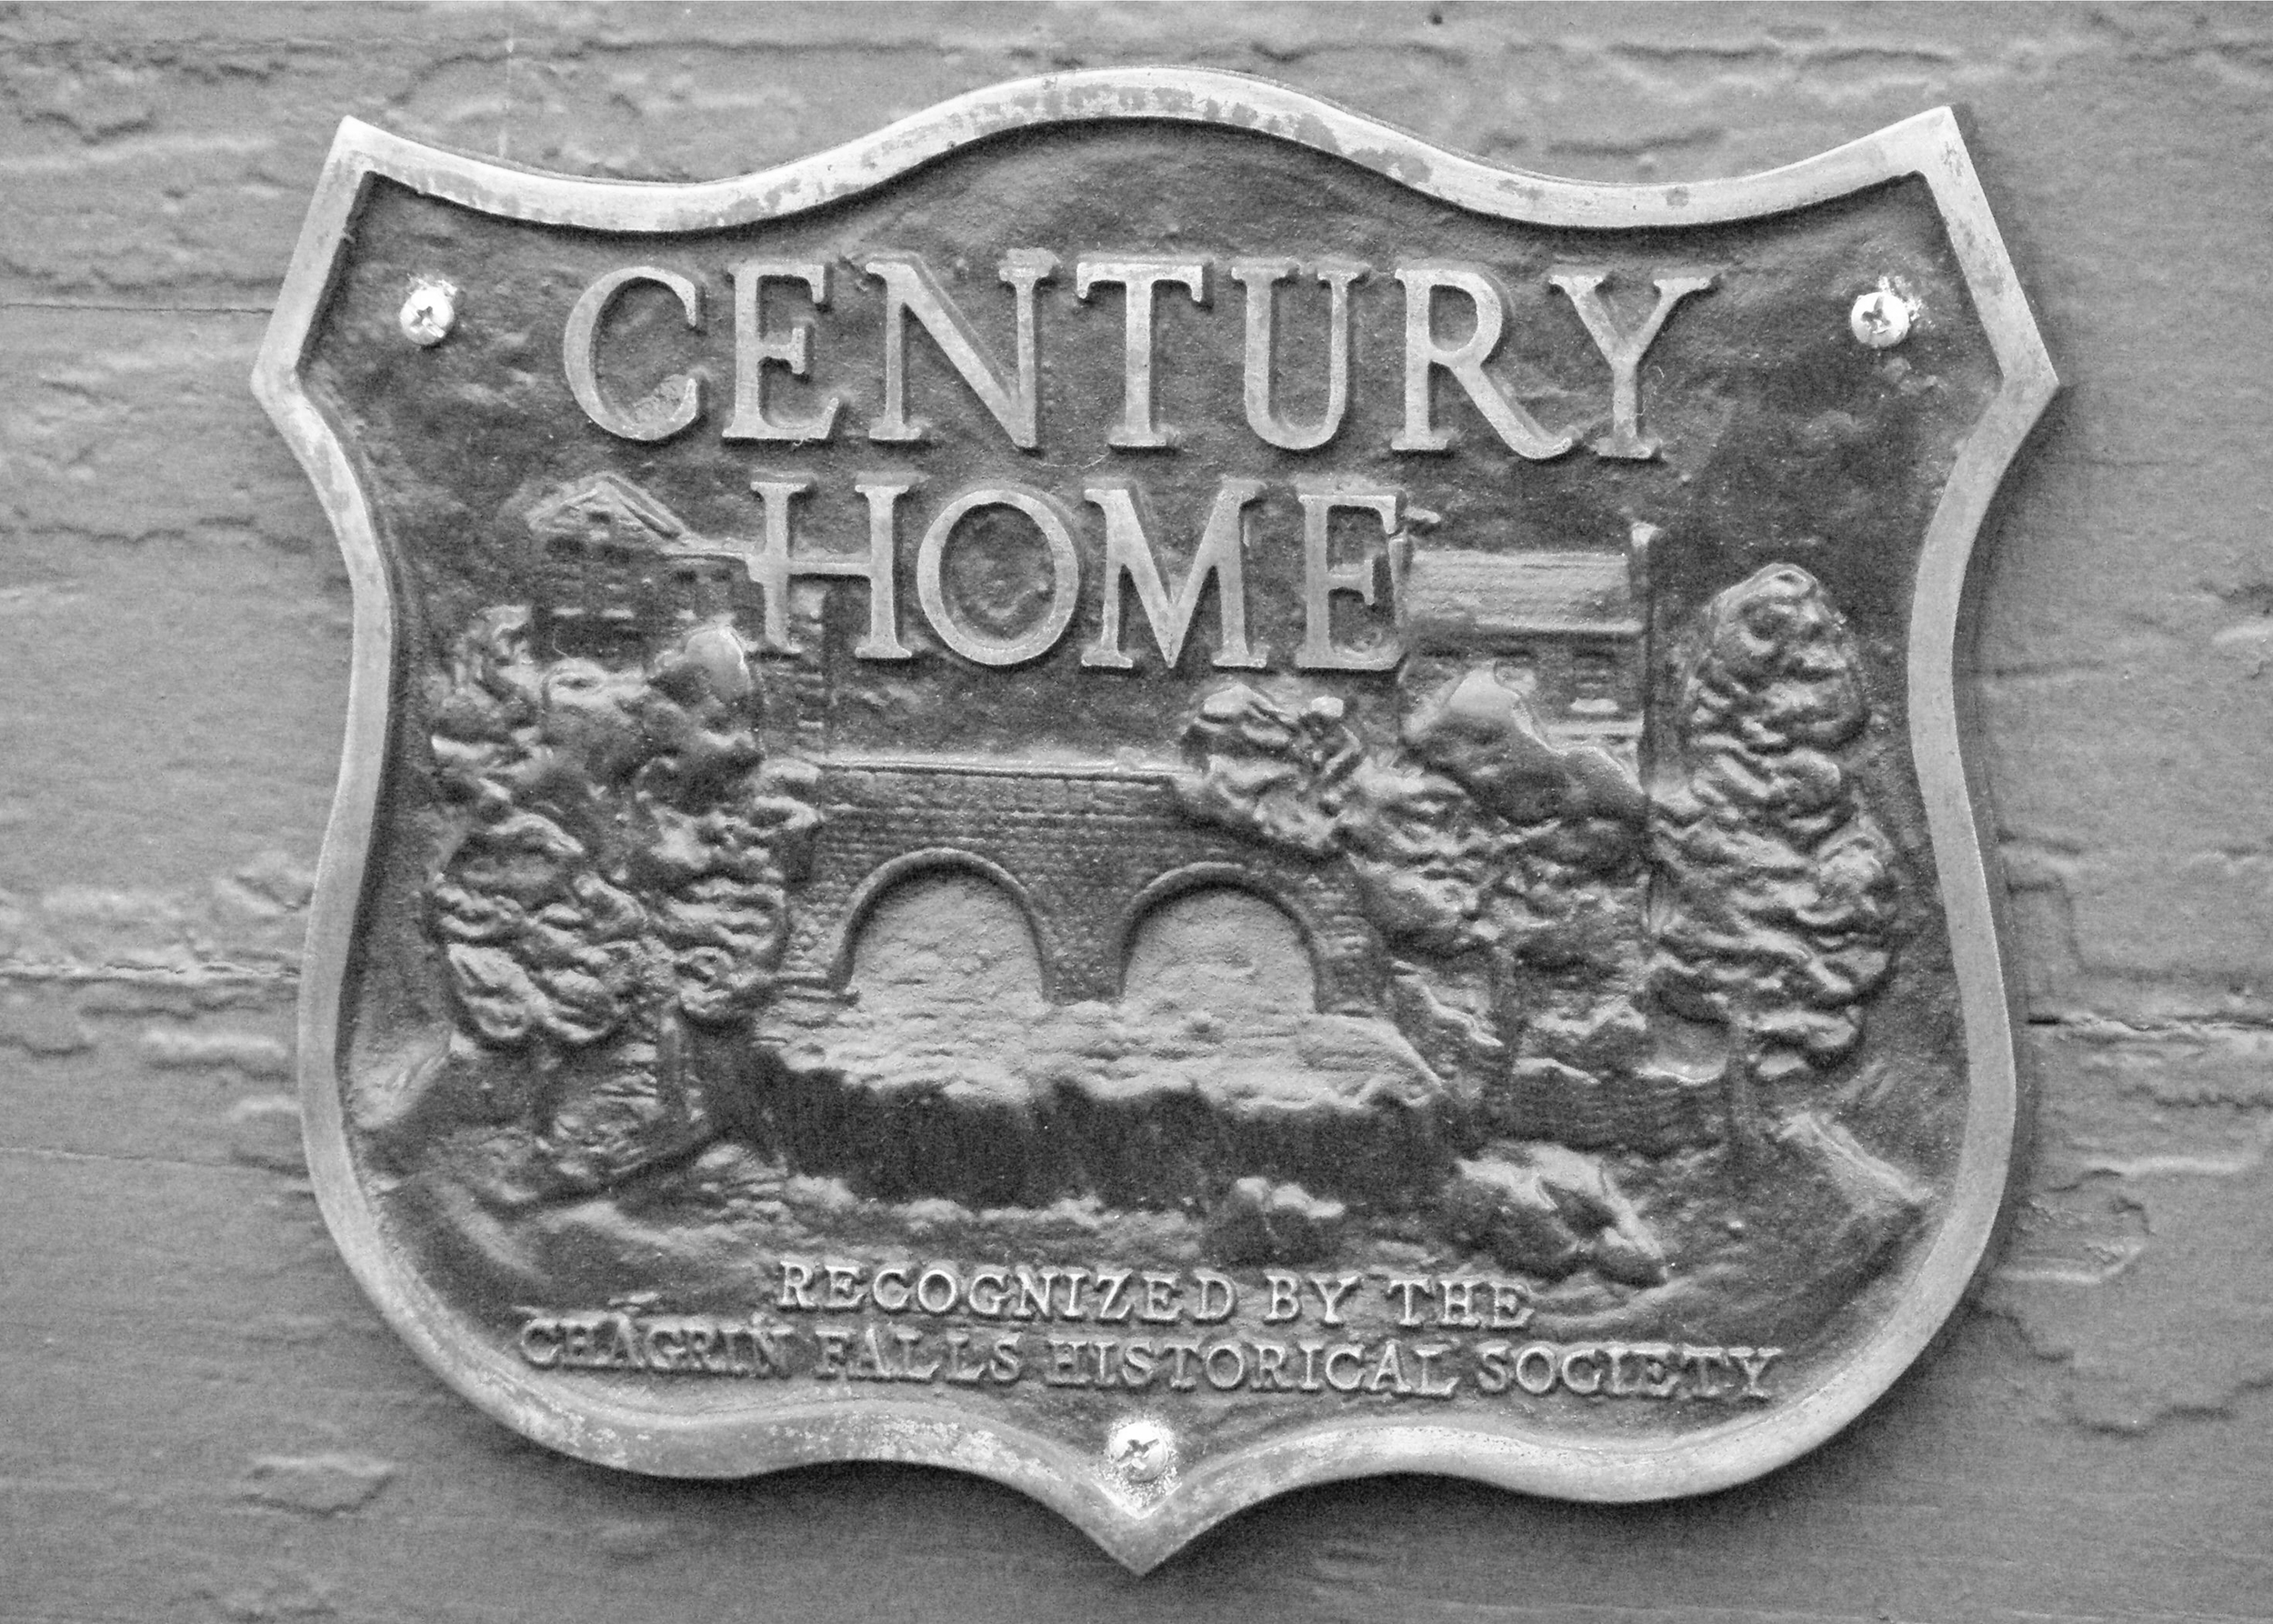 VE_Century Home_BW.jpg